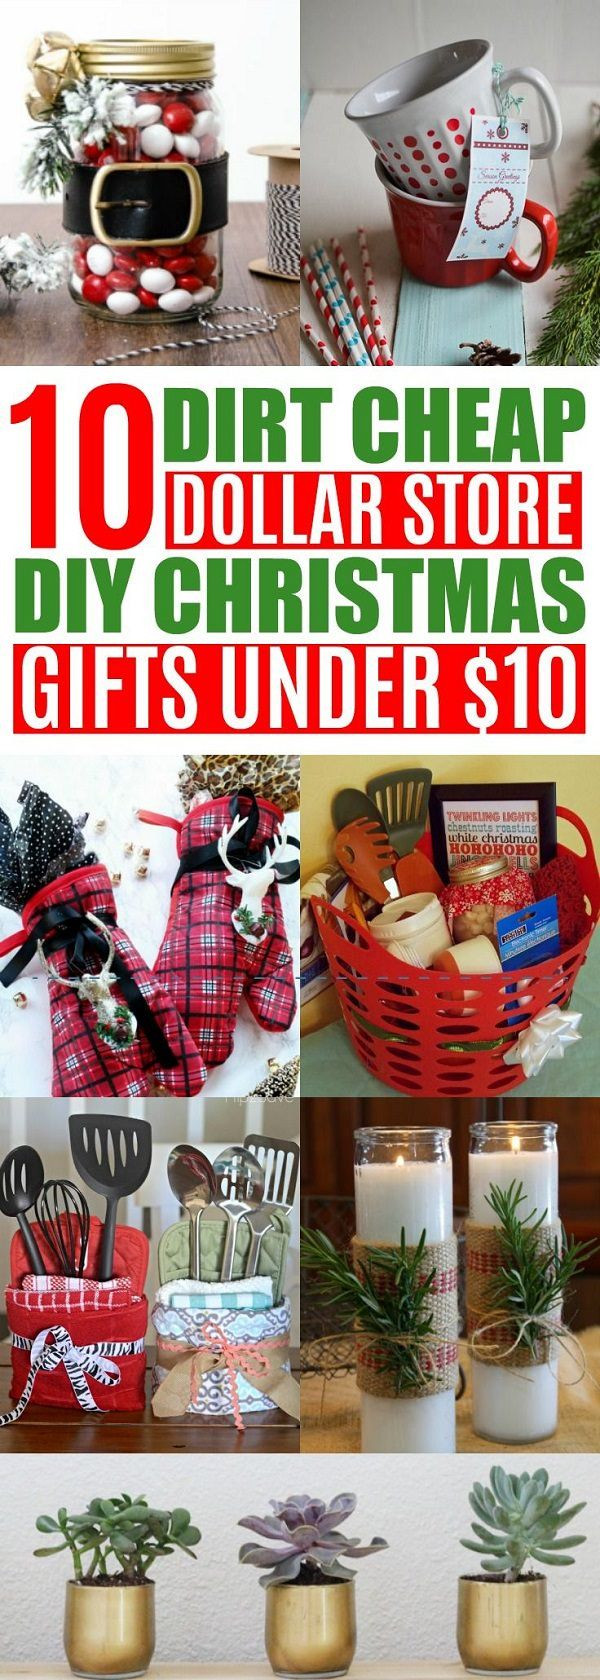 Office Holiday Gift Ideas  25 unique fice christmas ts ideas on Pinterest